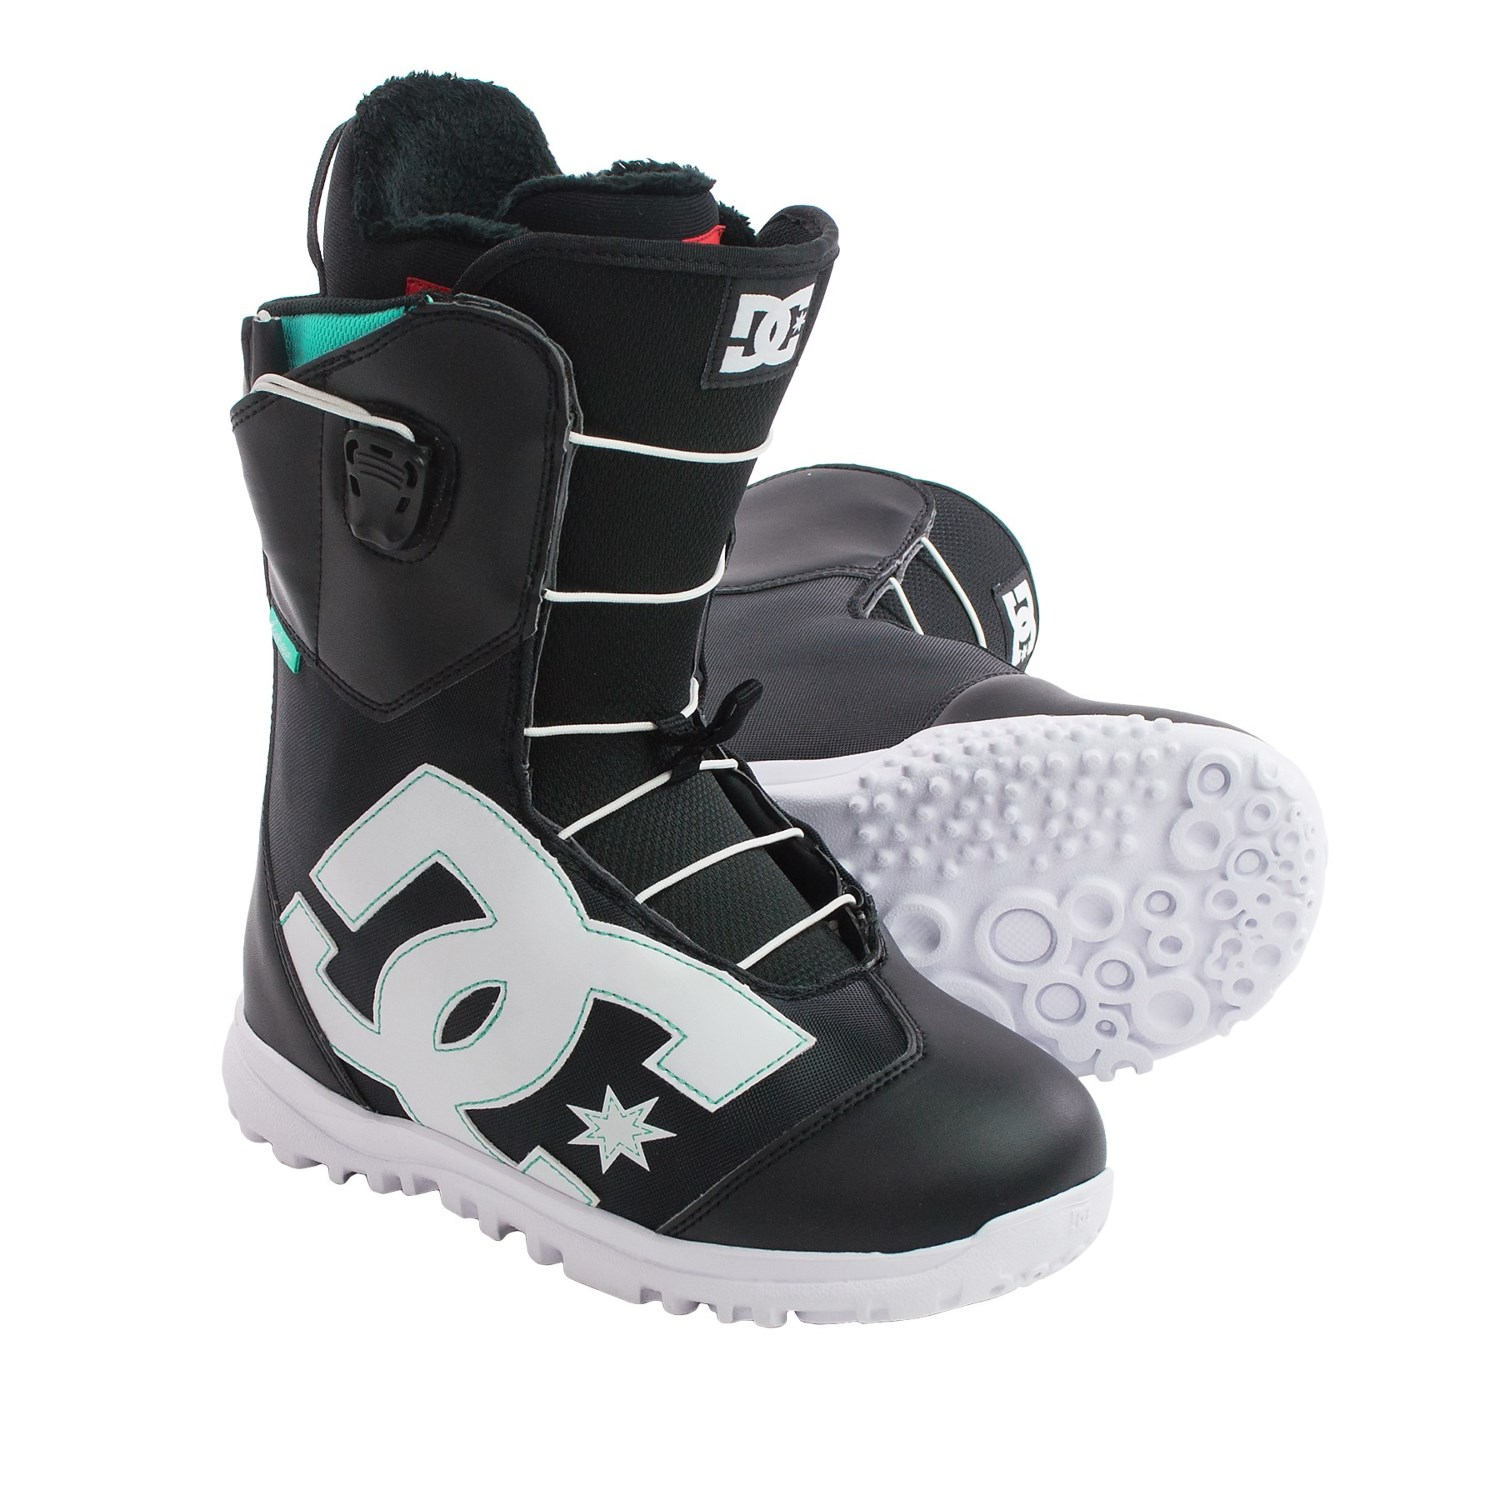 dc shoes avour snowboard boots for save 70